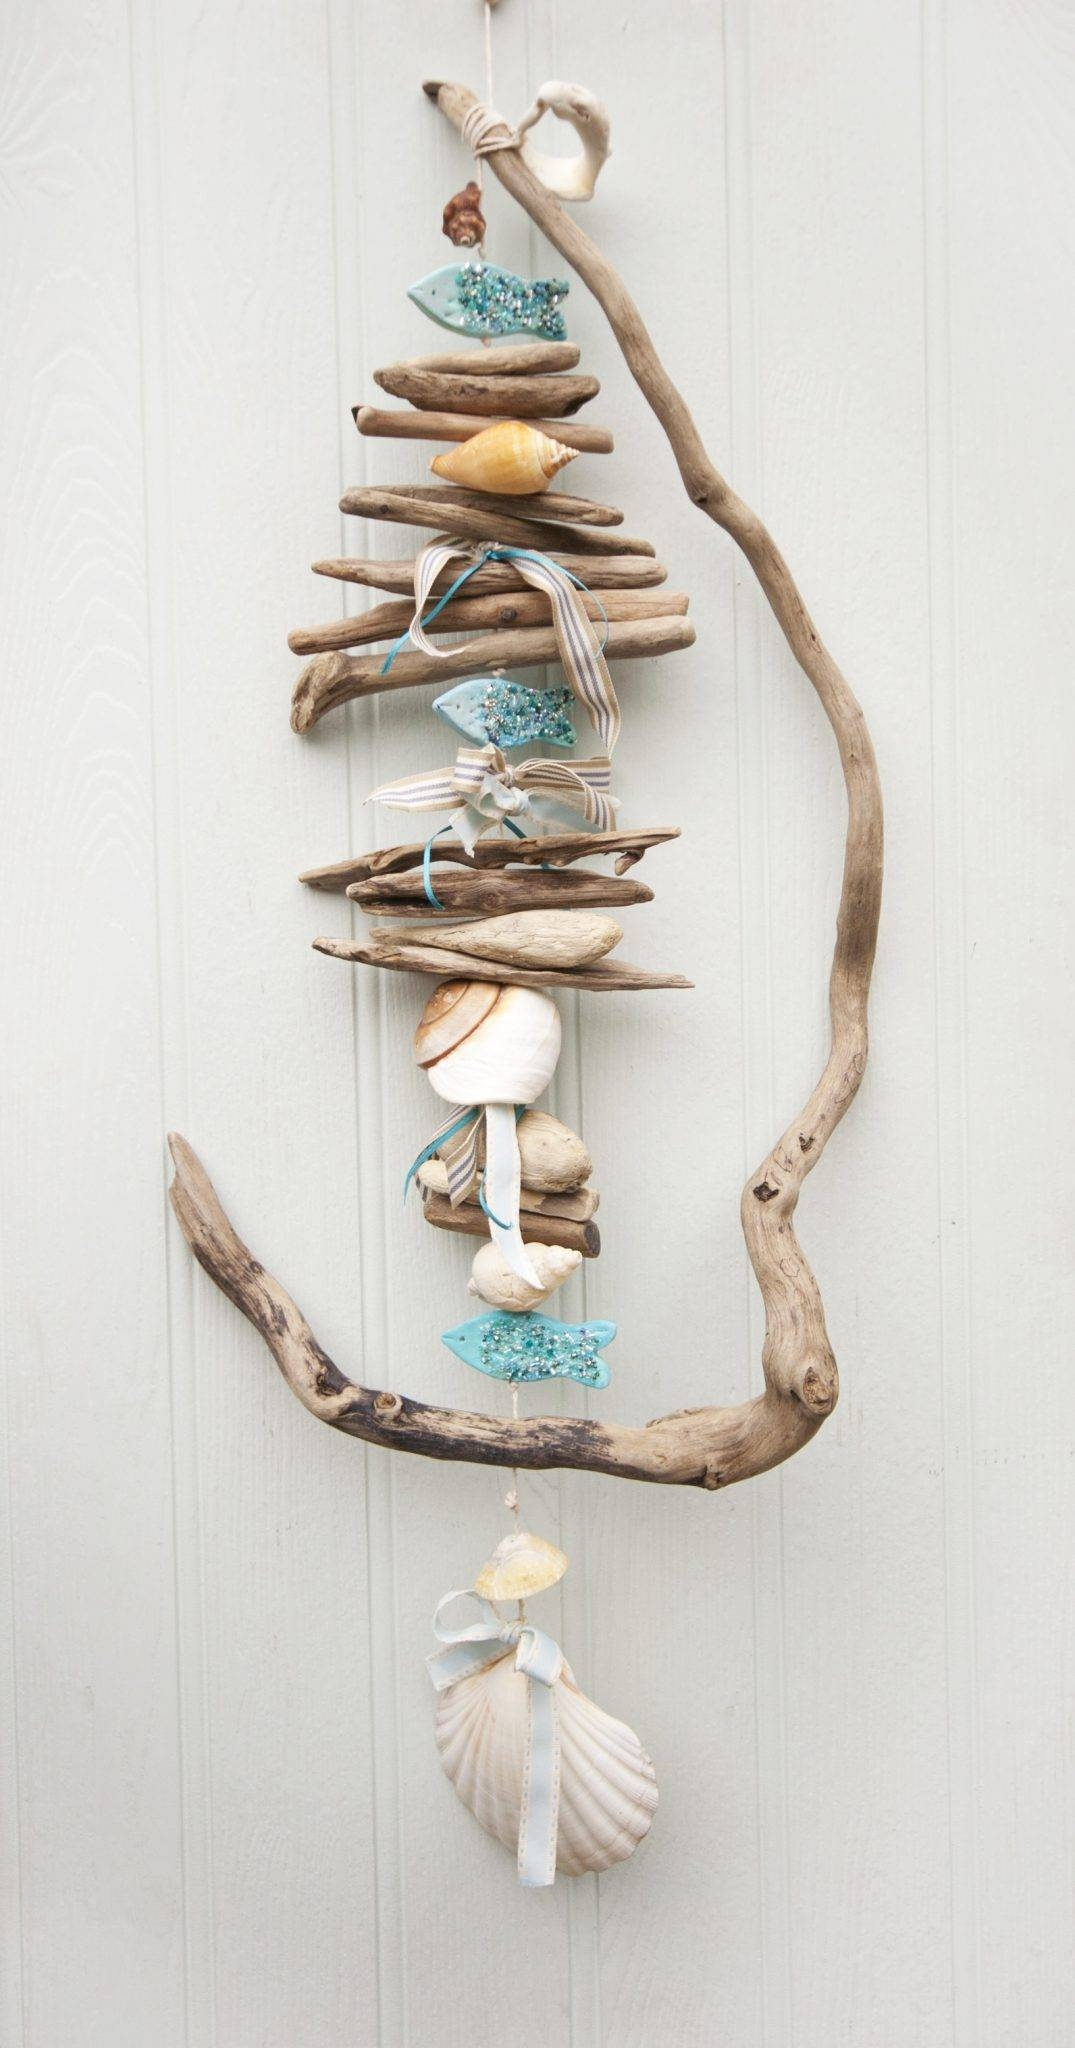 Home – Driftwood Dreaming Inside Most Recent Driftwood Wall Art For Sale (View 12 of 30)